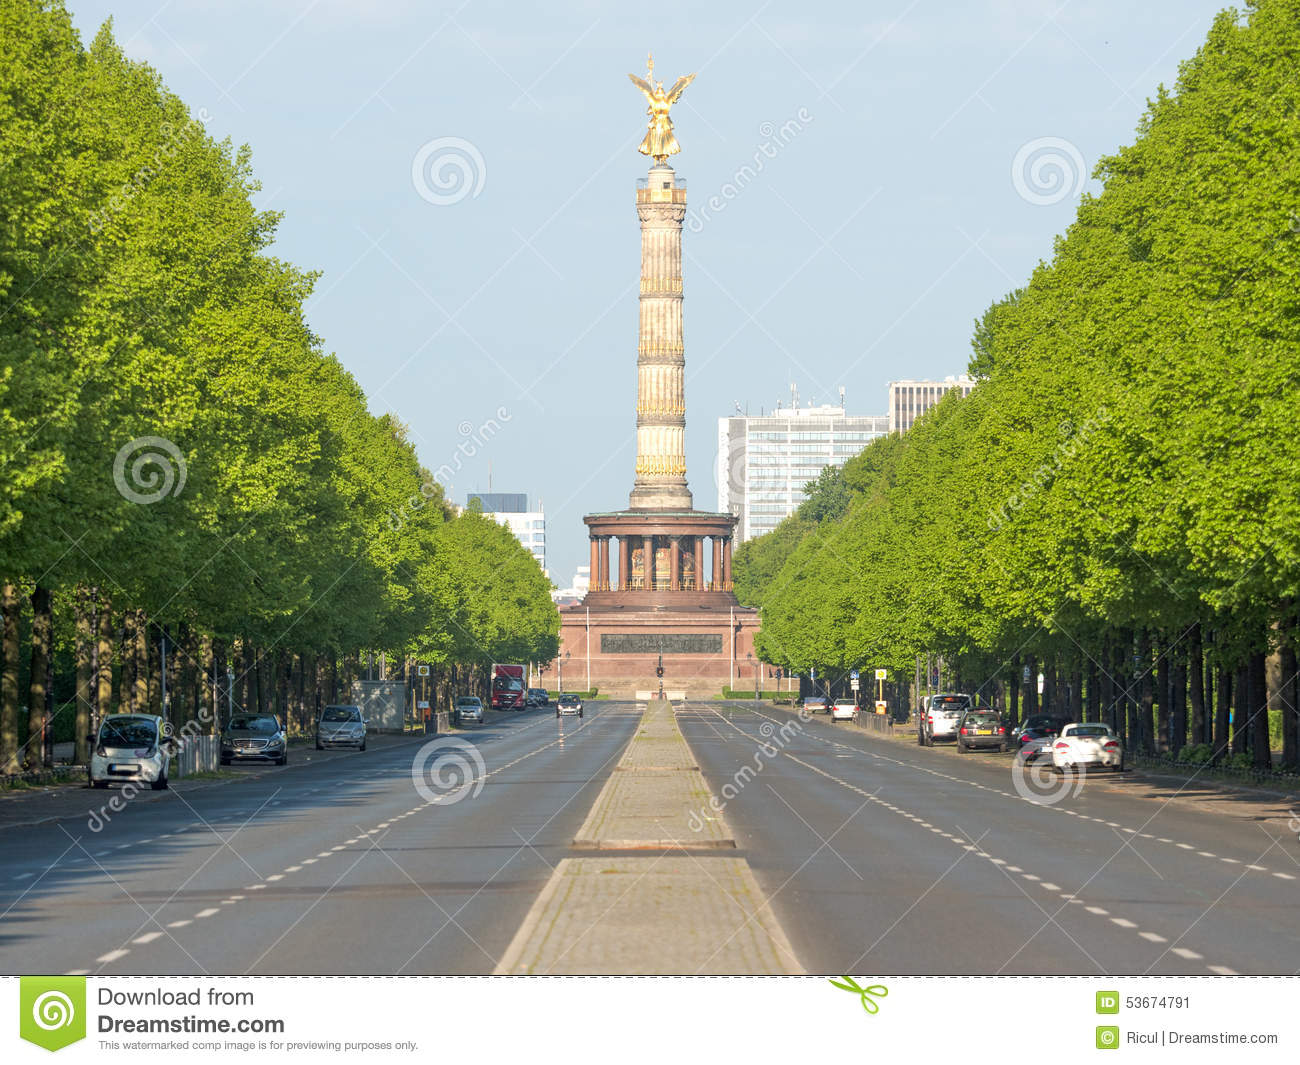 Avenue June 17 with Victory Column in Berlin